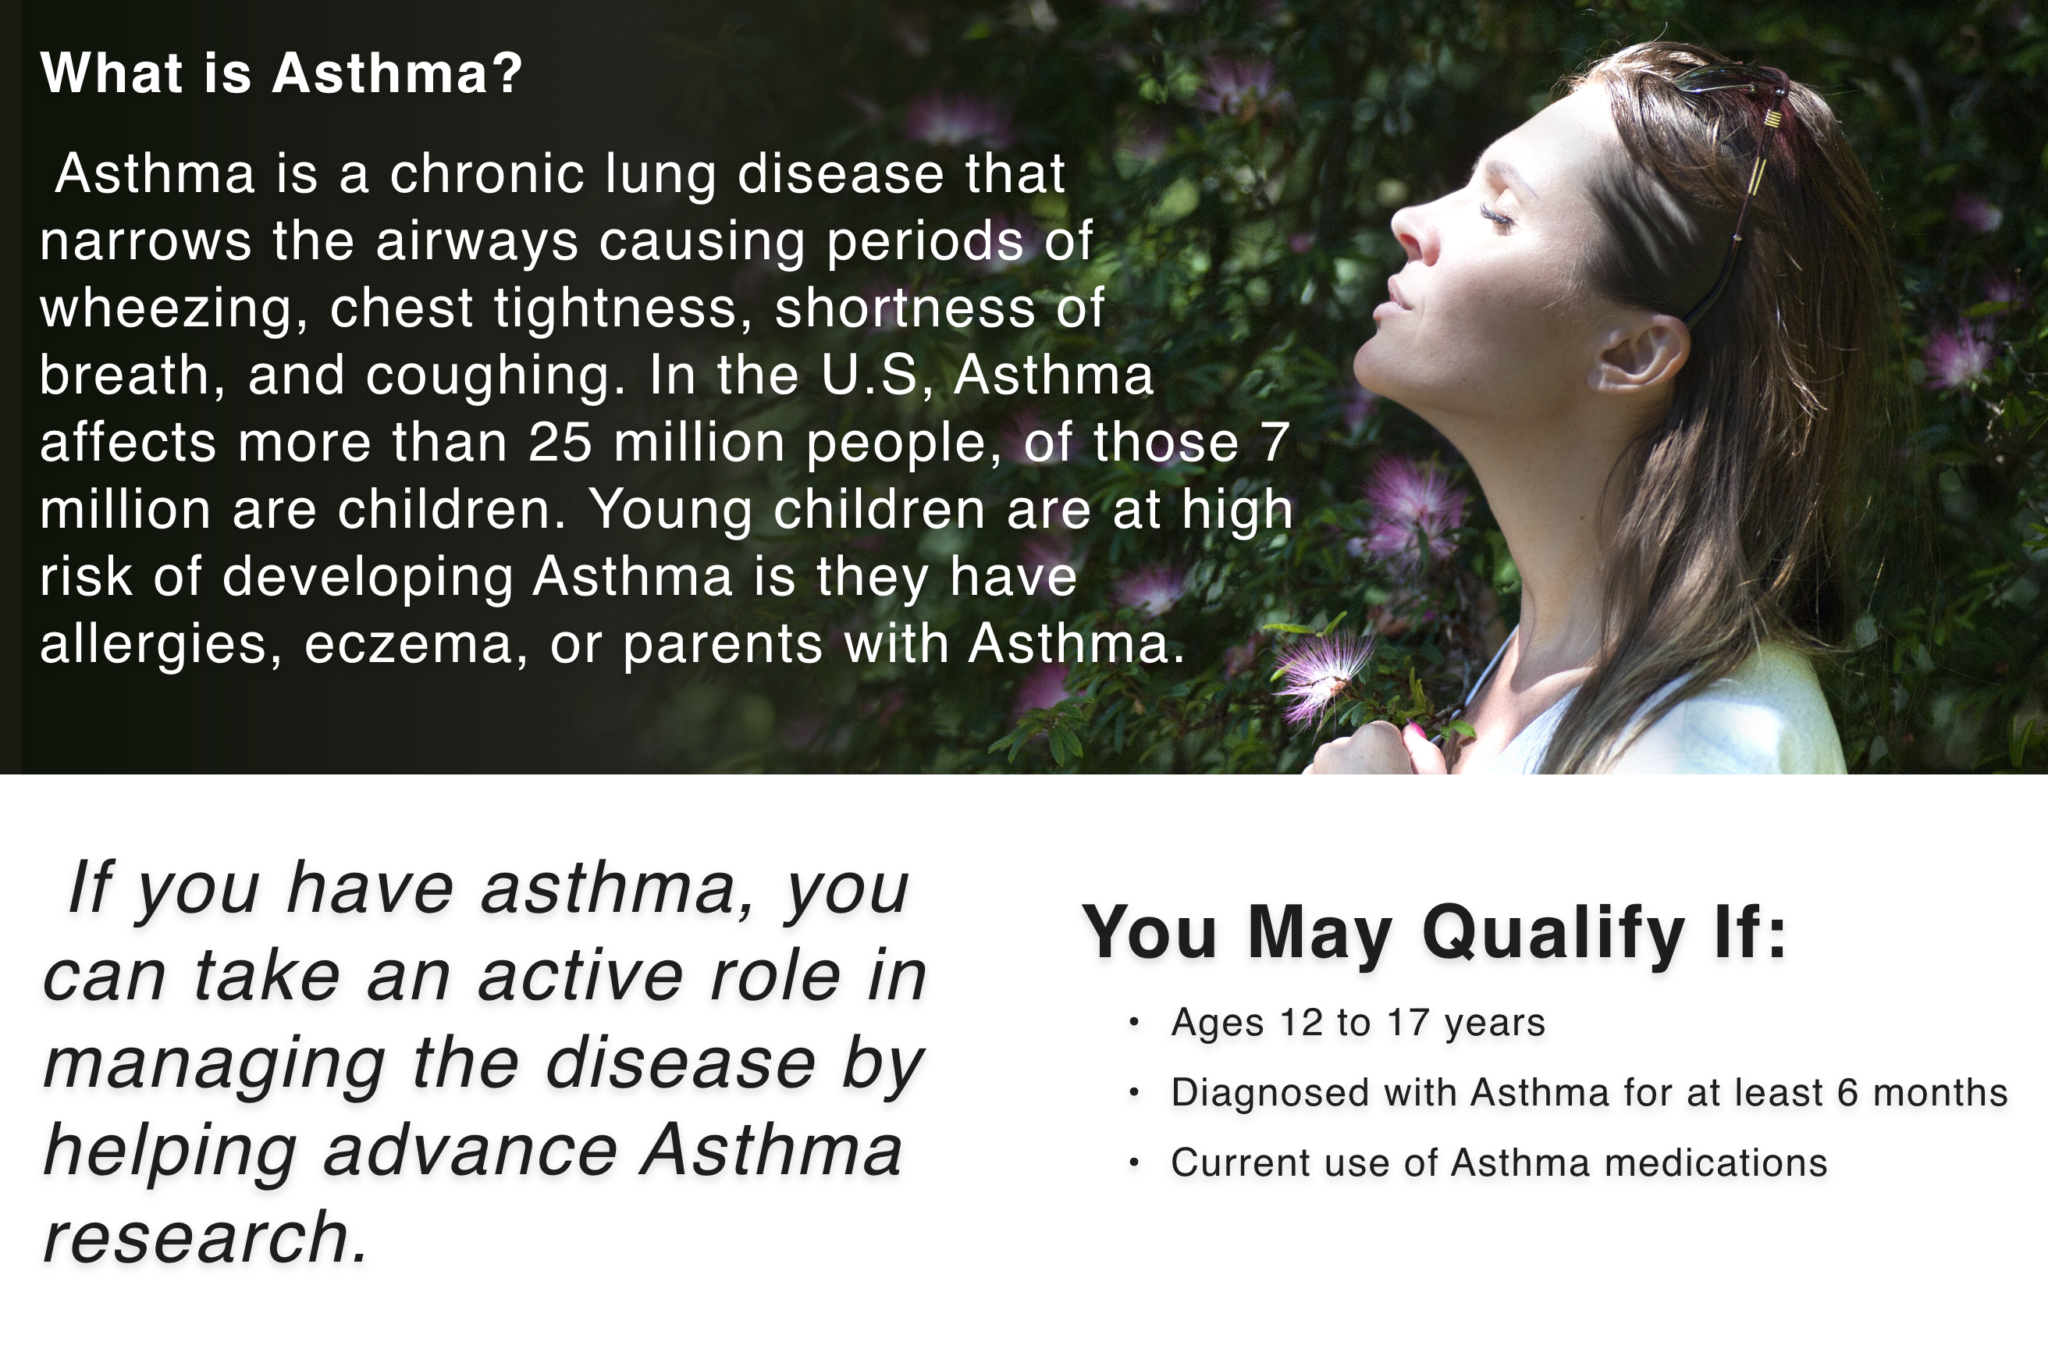 asthma-landing-page-info